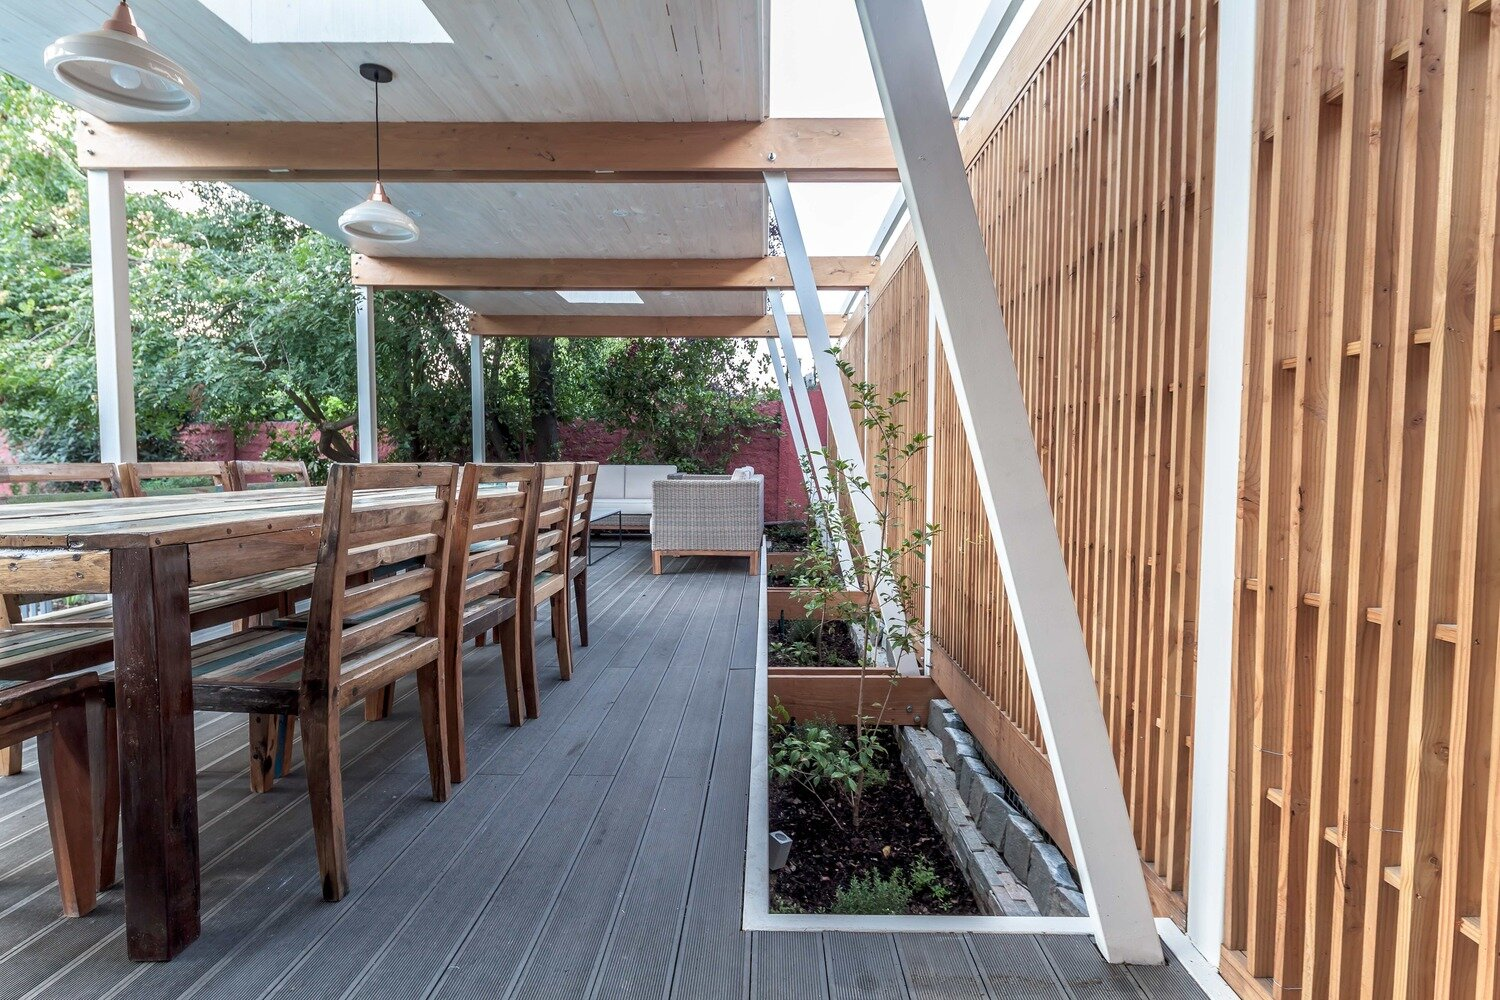 Pergola Pavilion - PAR Arquitectos - Chile - Dining Area - Humble Homes